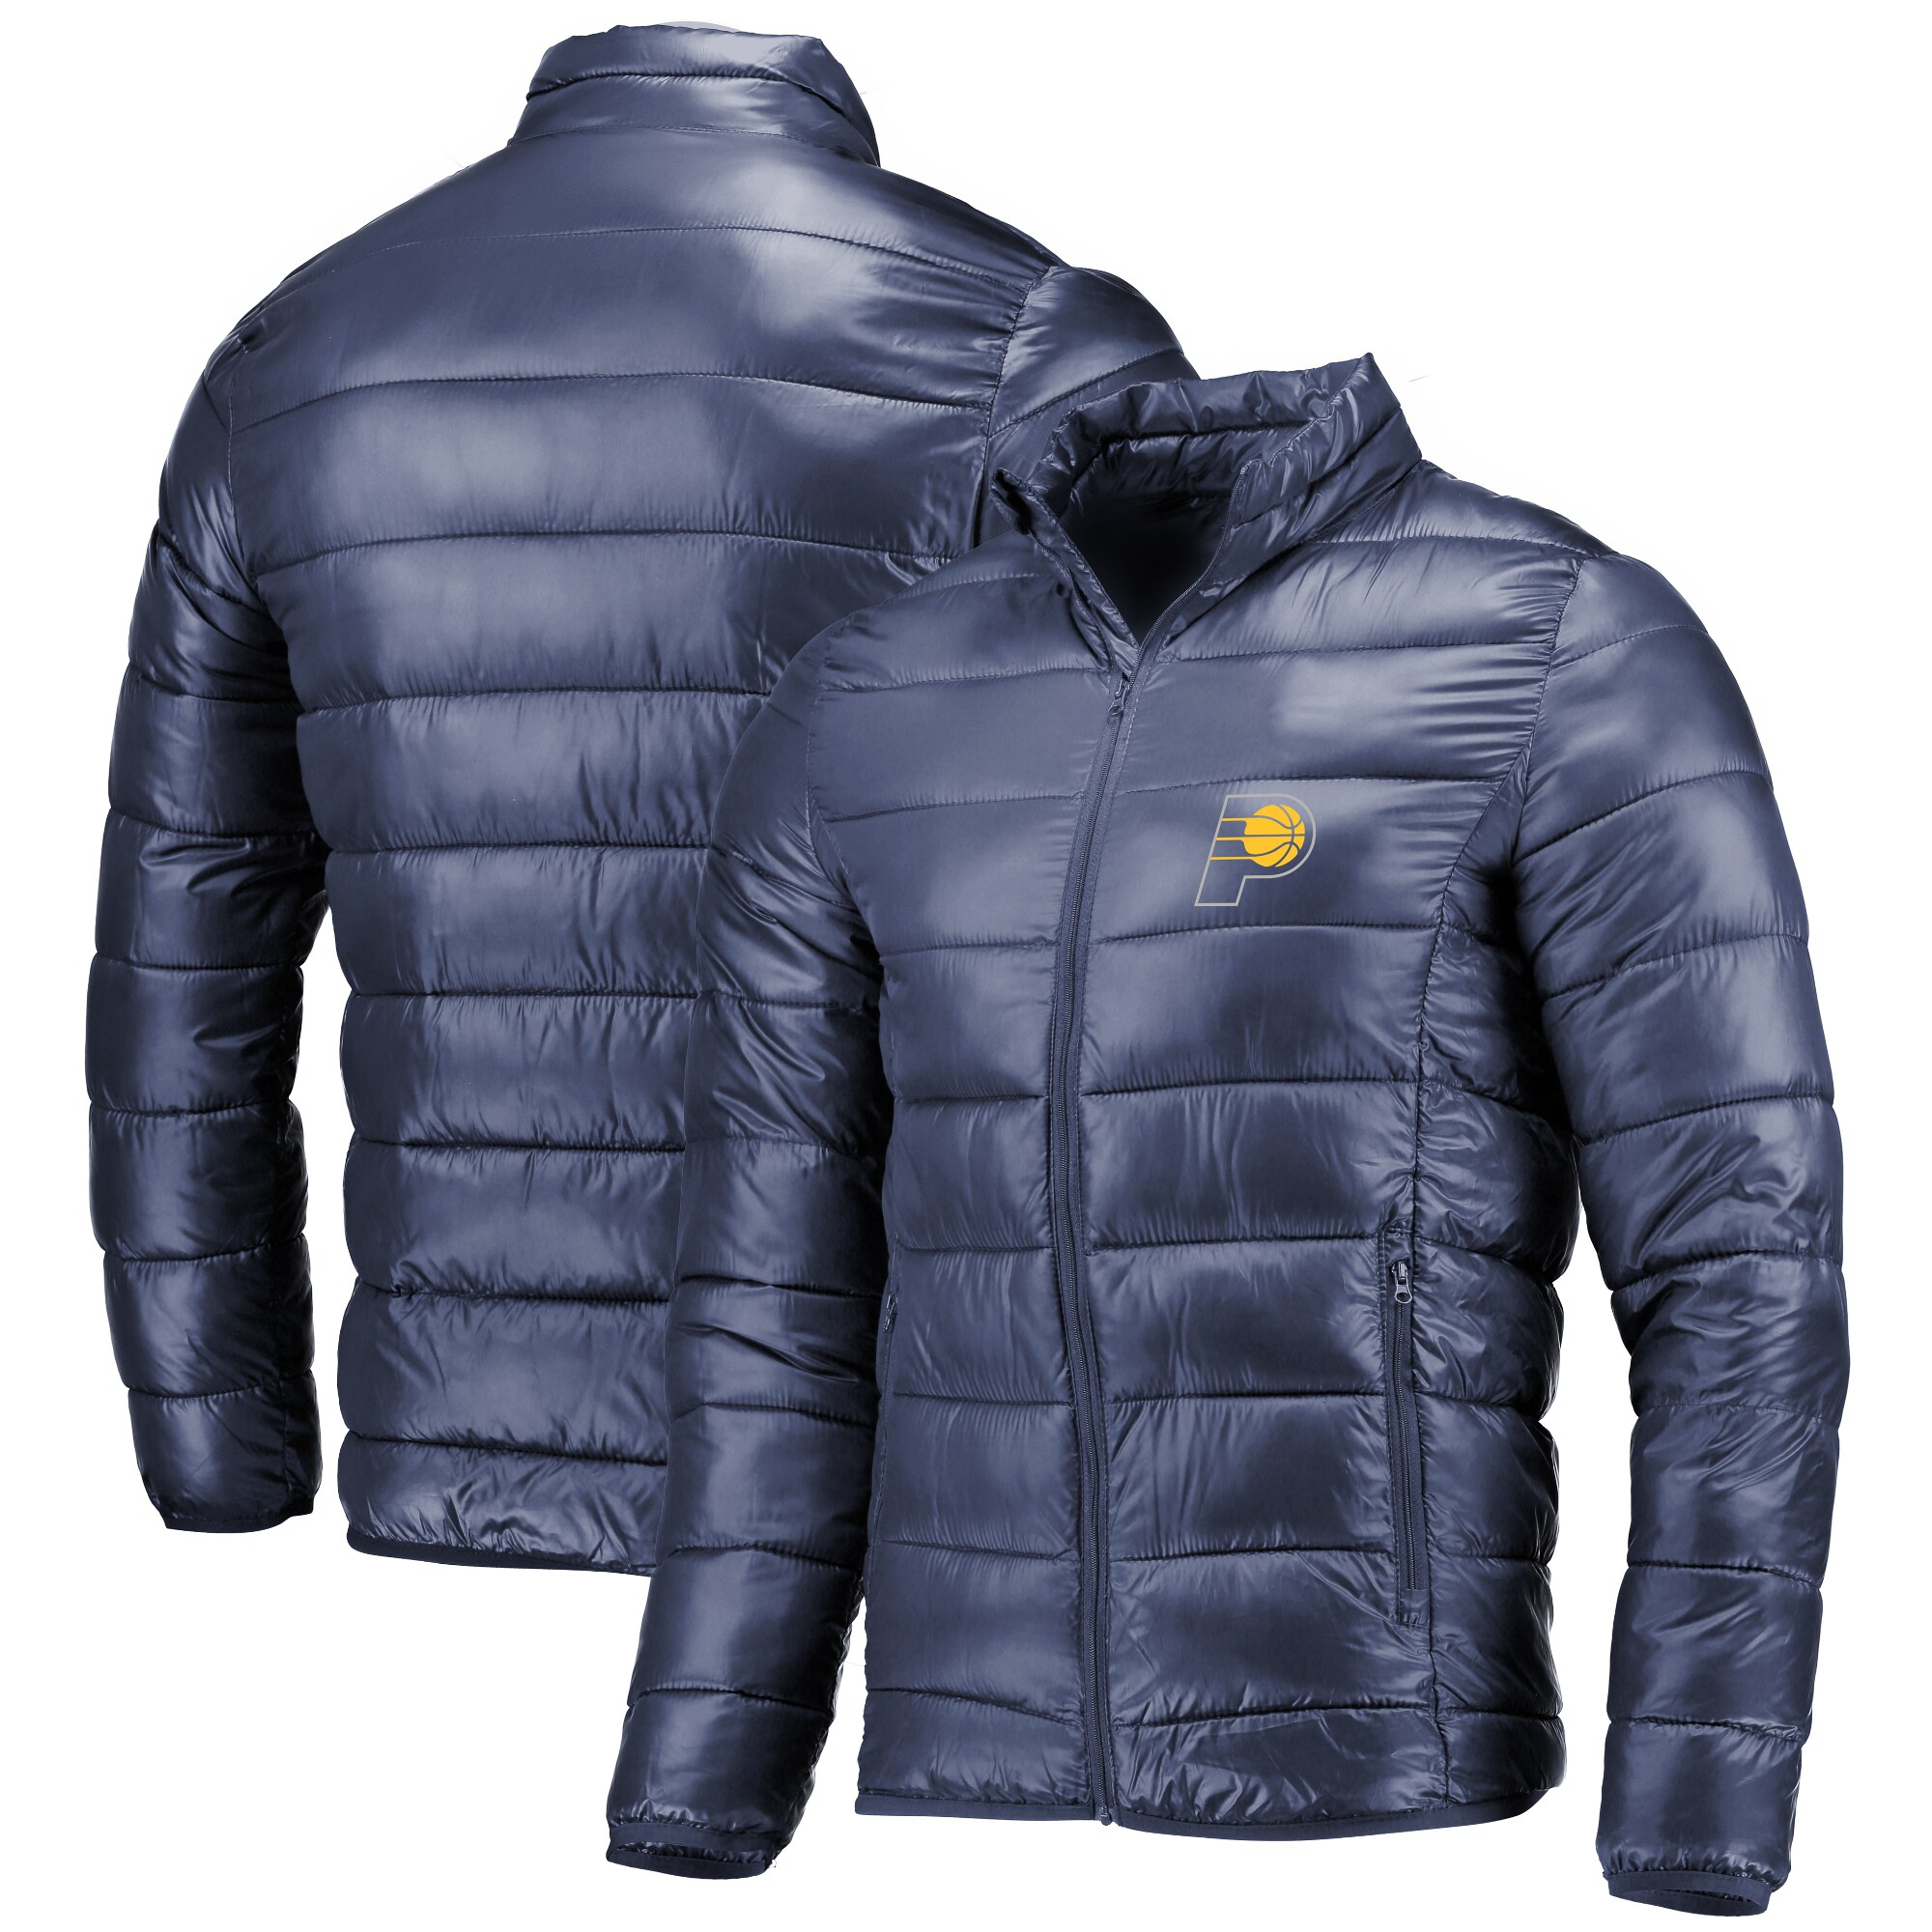 Indiana Pacers Fanatics Branded Polyester Filled Puffer Jacket - Navy